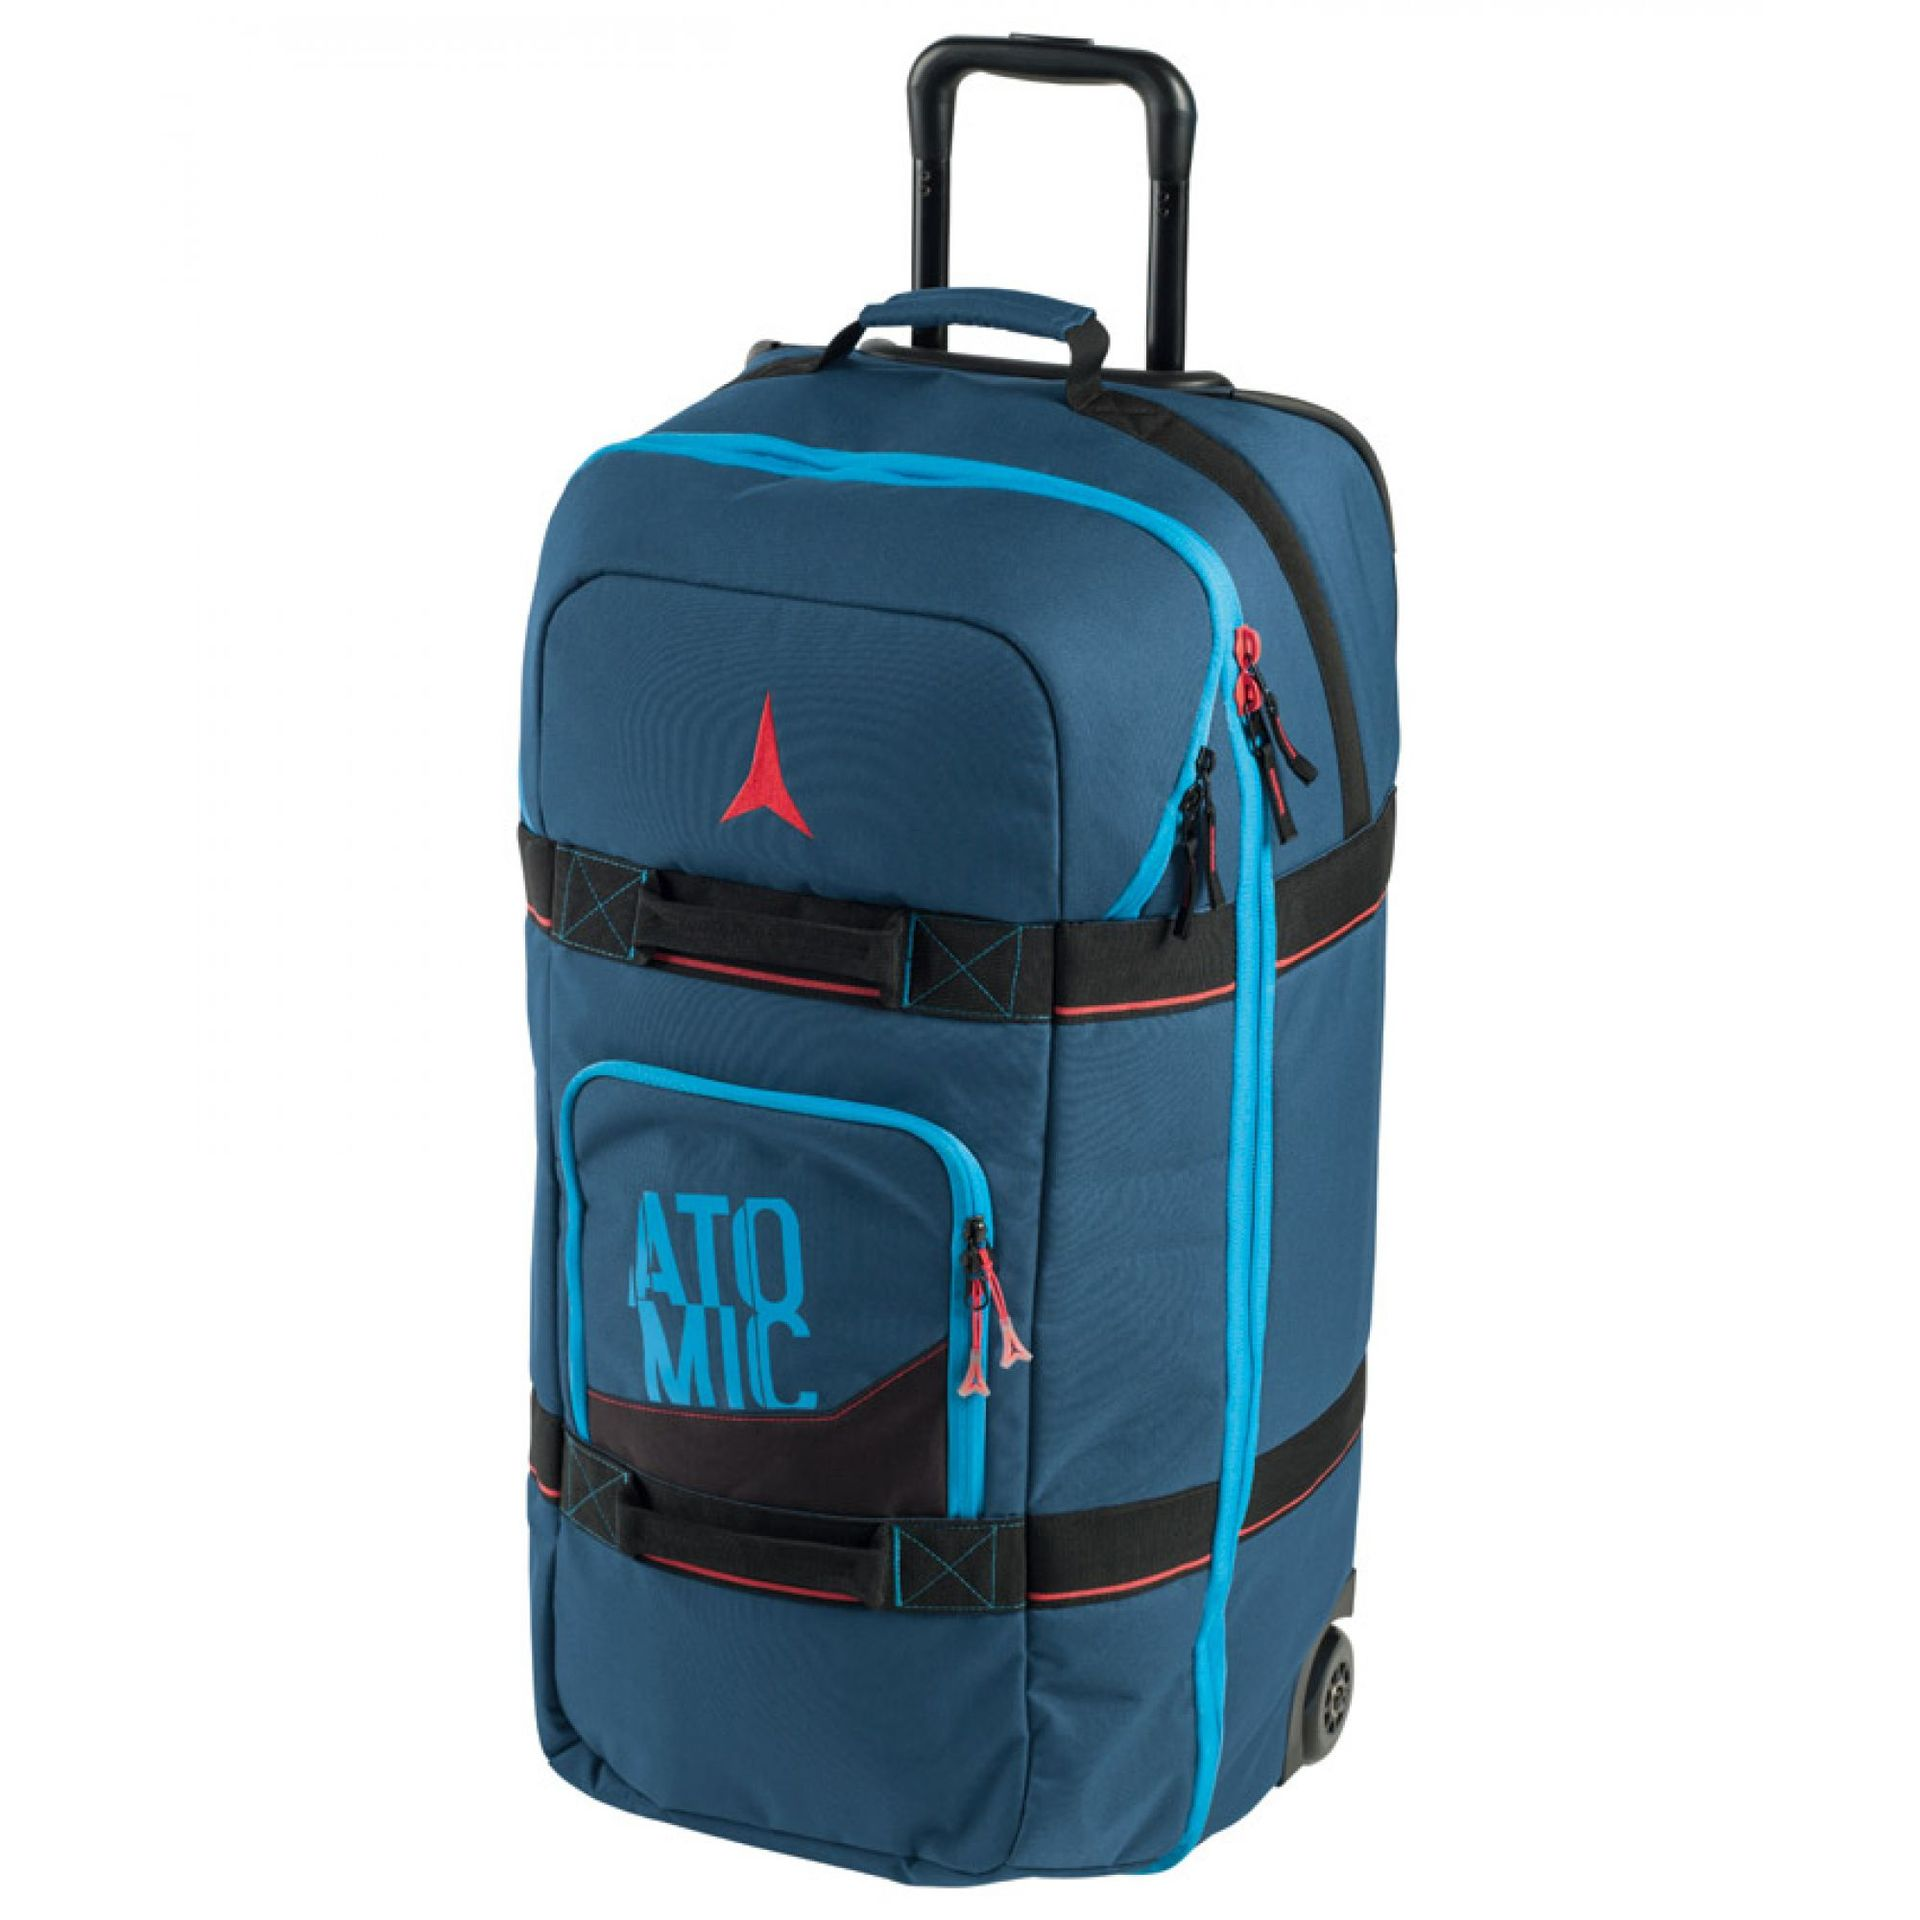 TORBA PODRÓŻNA ATOMIC AMT TRAVEL BAG WHEELIE